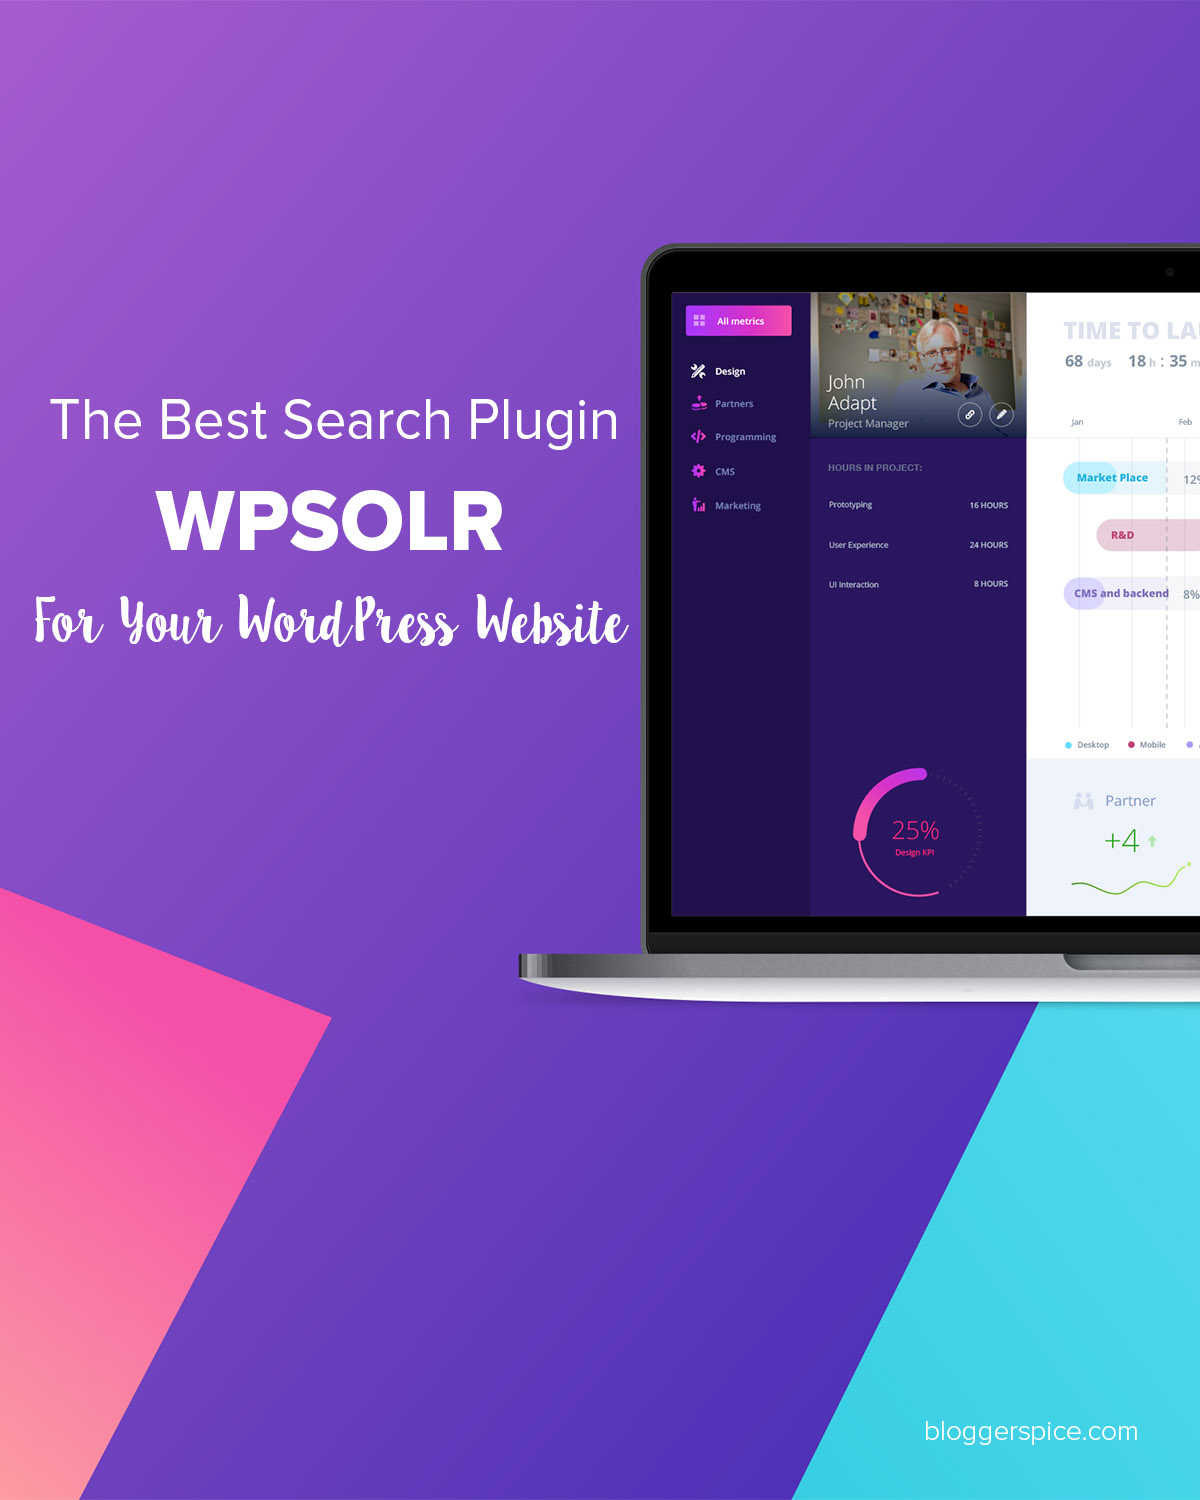 Are you looking for Instant, Predictive and Accurate Search for your WordPress site? You are now in right place. Because for getting super-sonic searches you must choose the right WordPress plugin to grow your site steadily.